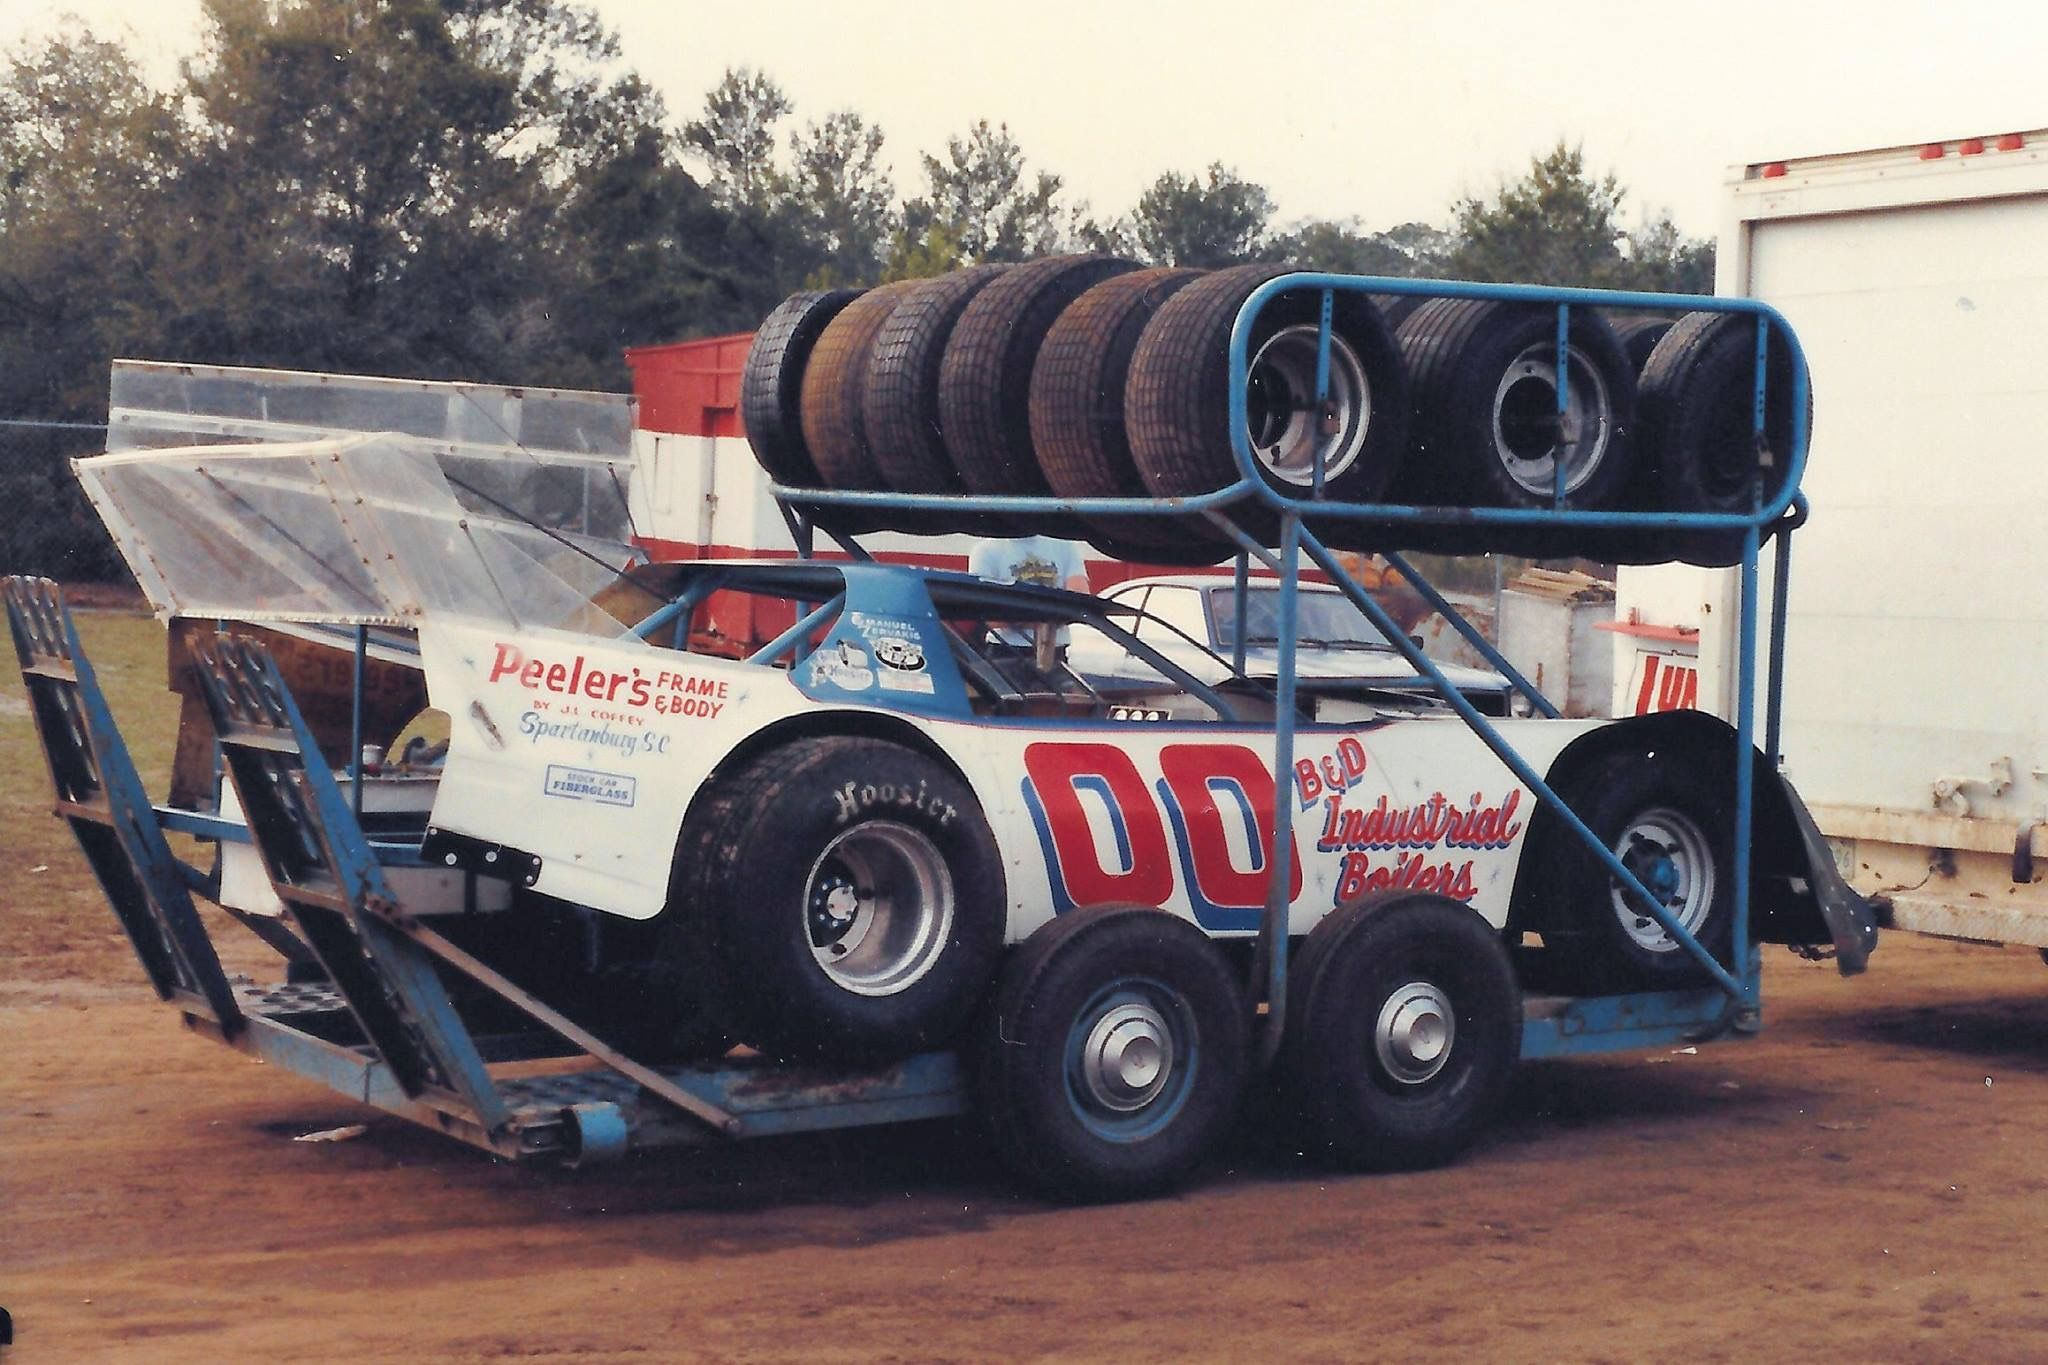 Dirt Track Race Cars: Image Result For Speedway 605 Stock Car Photos